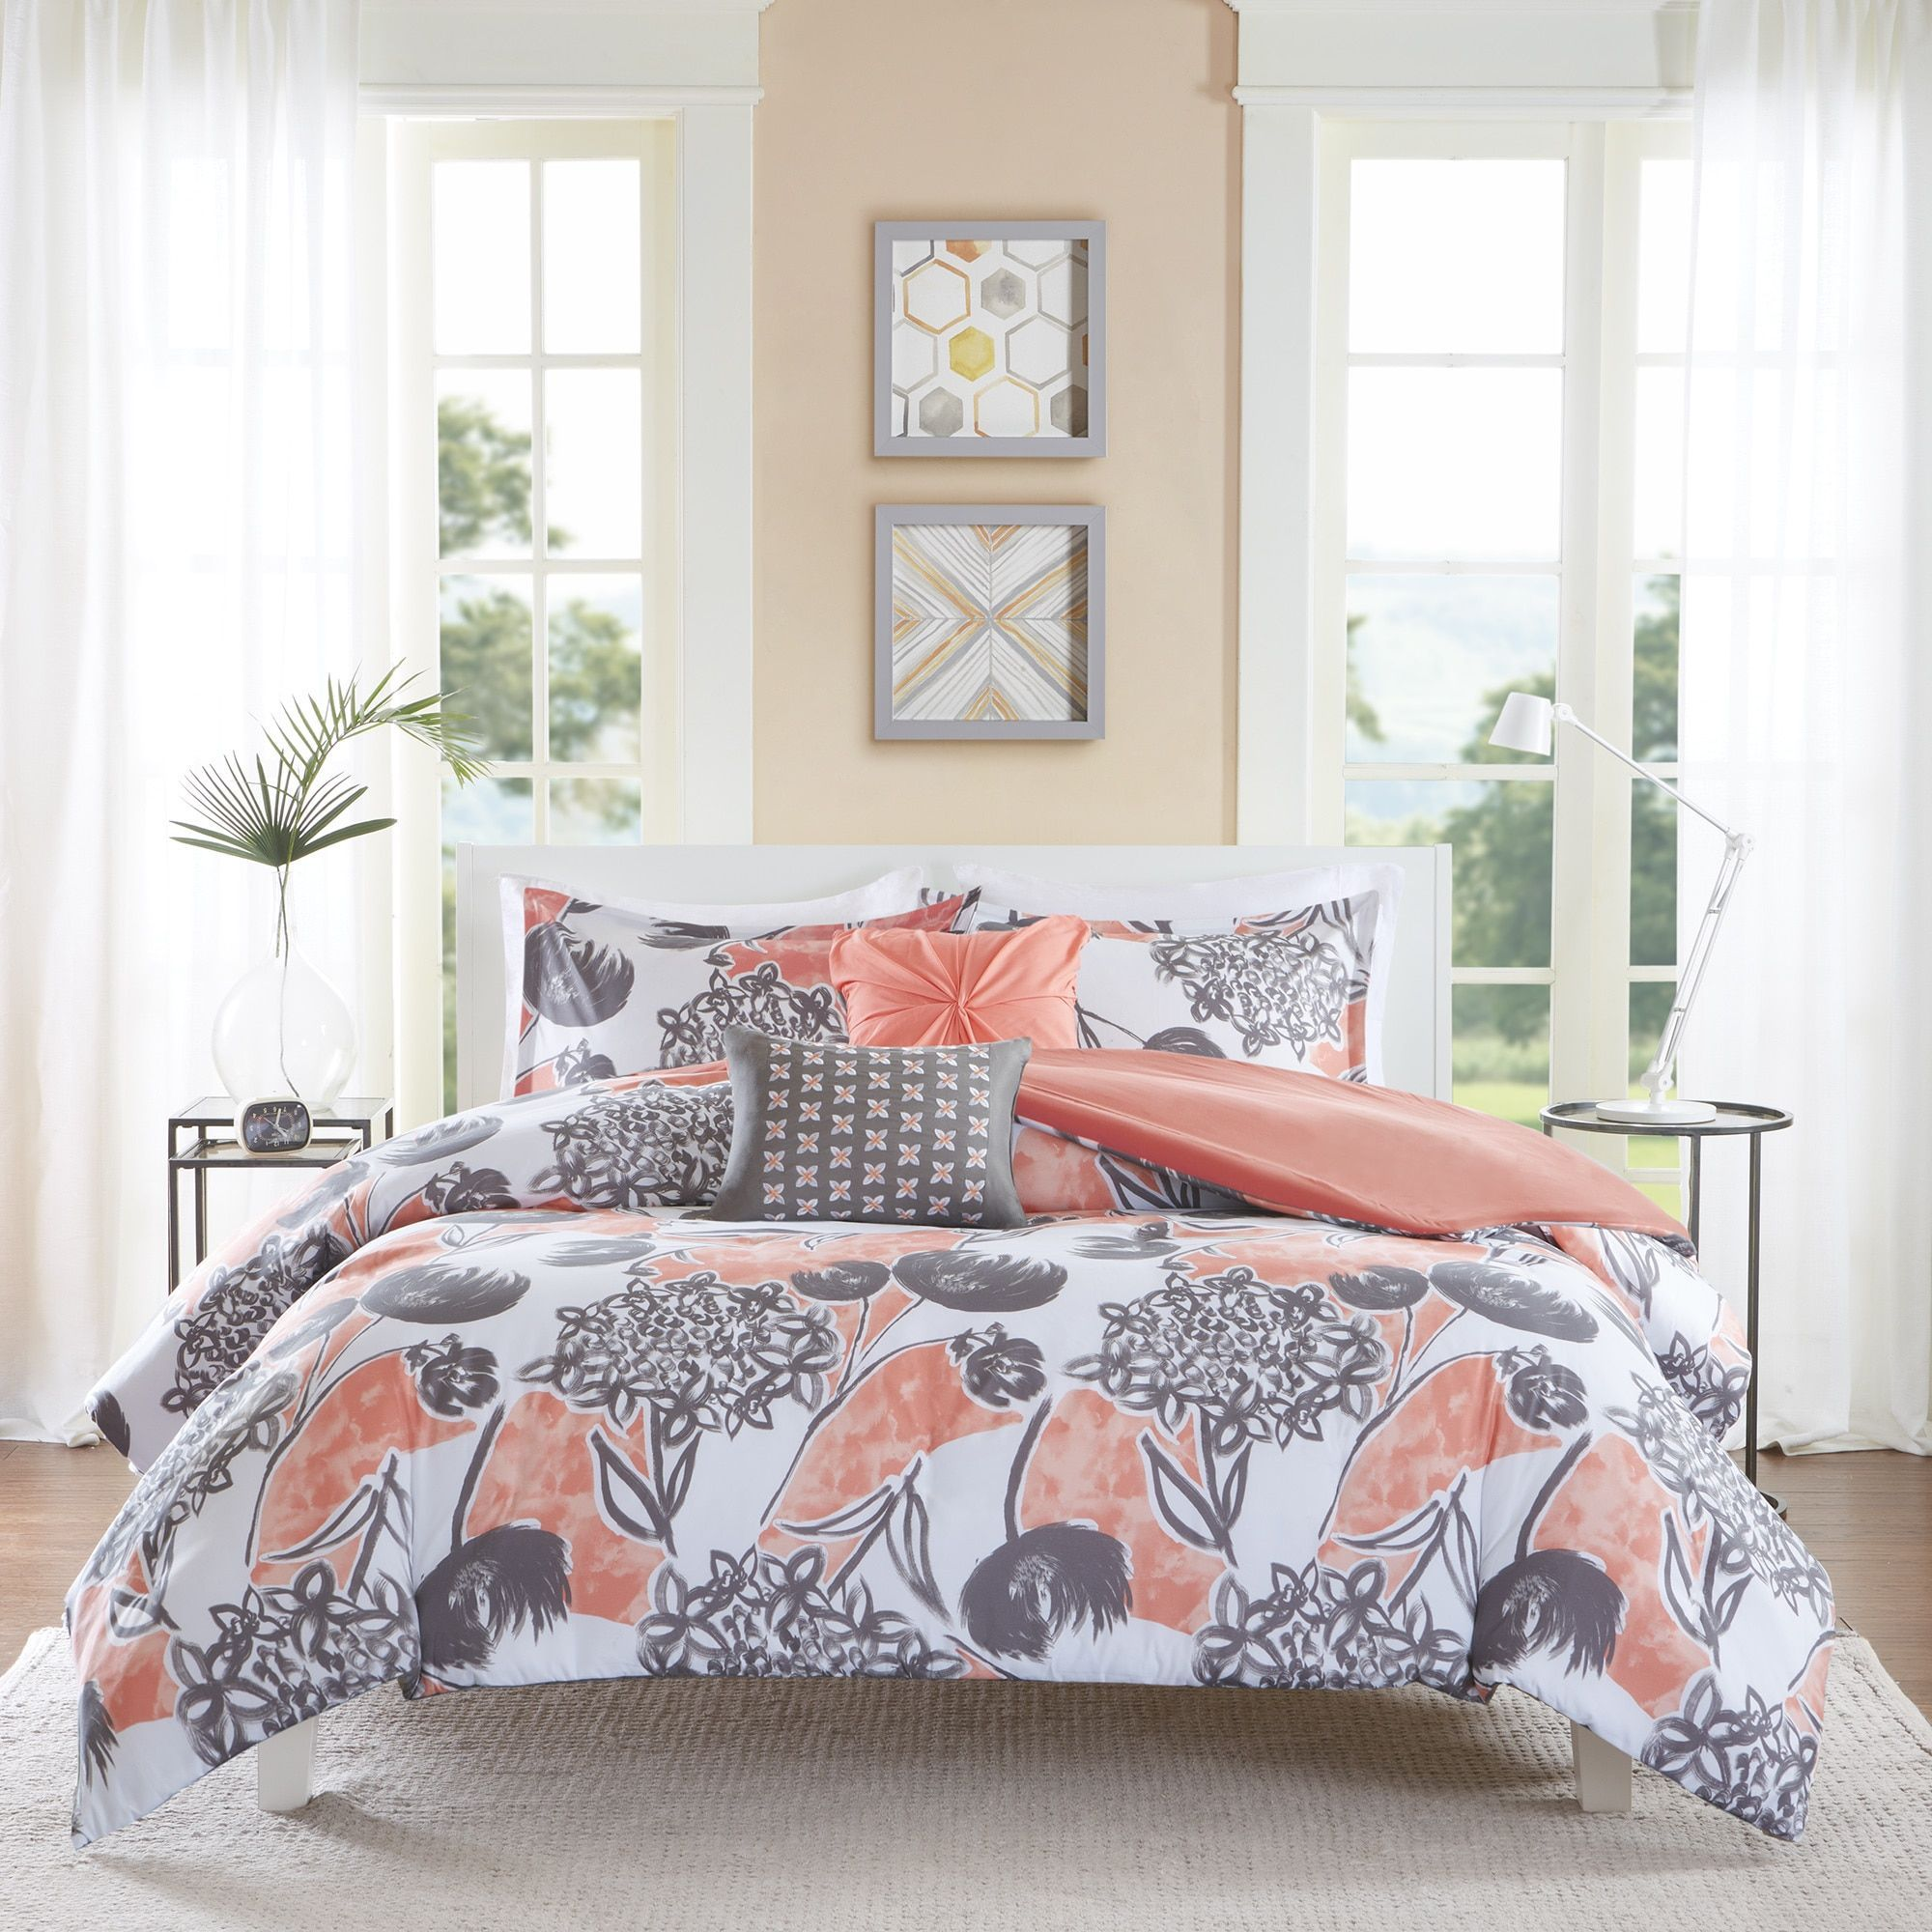 b212138f5c7 Intelligent Design Lily Coral Comforter Set | Overstock.com Shopping ...